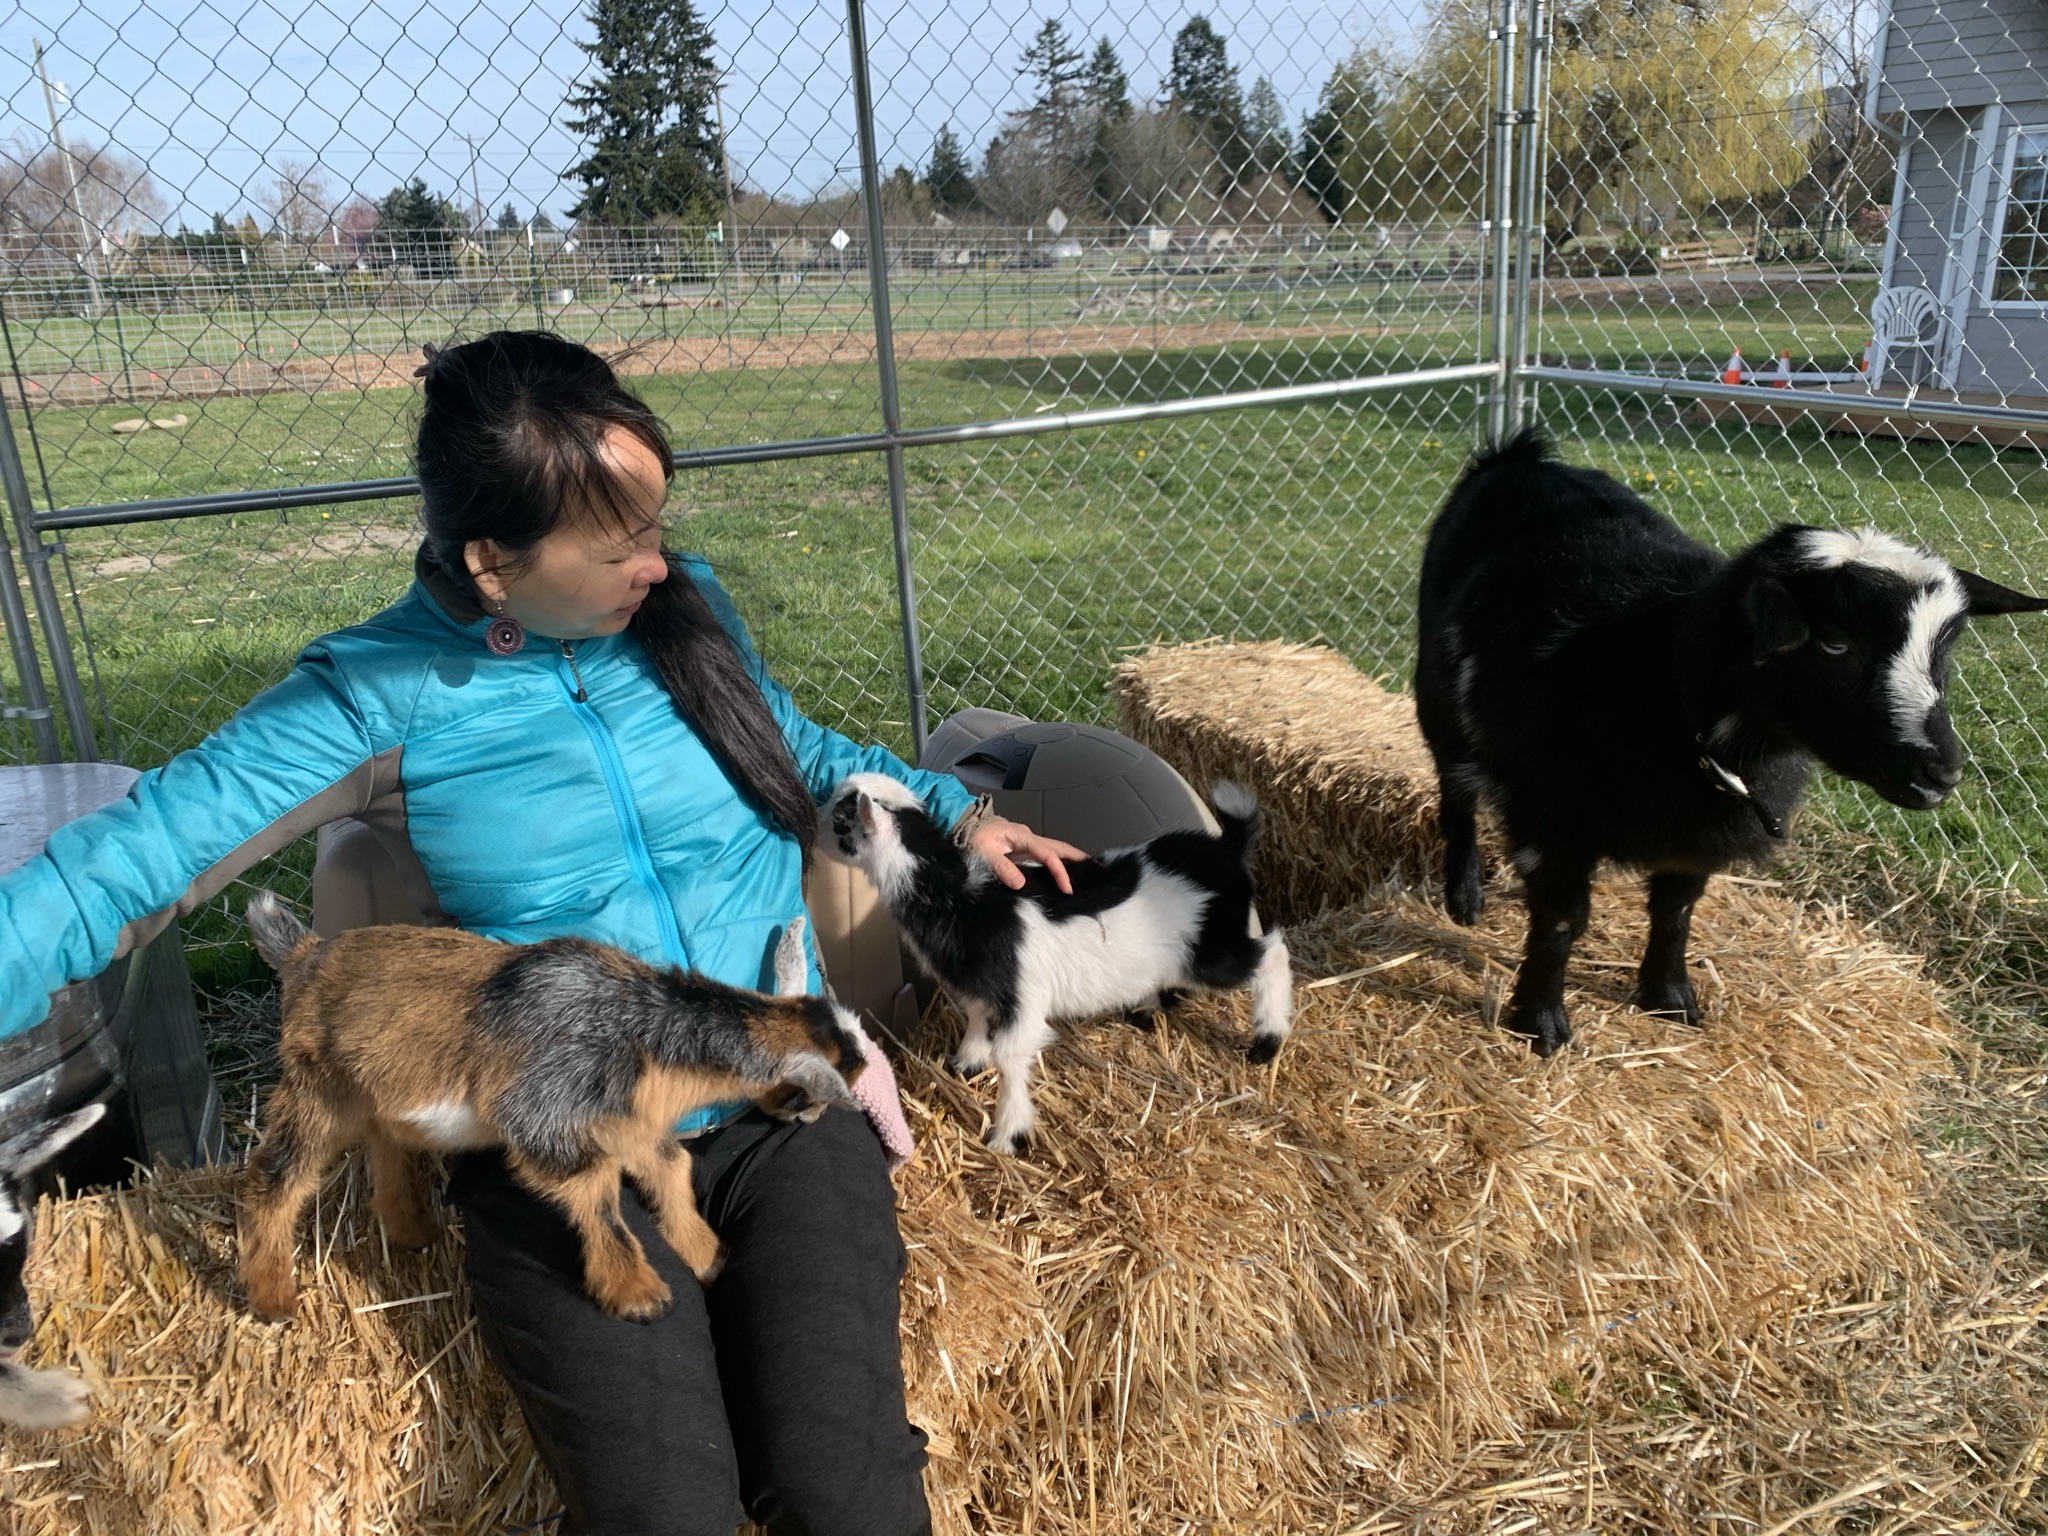 play-with-baby-goats.jpeg